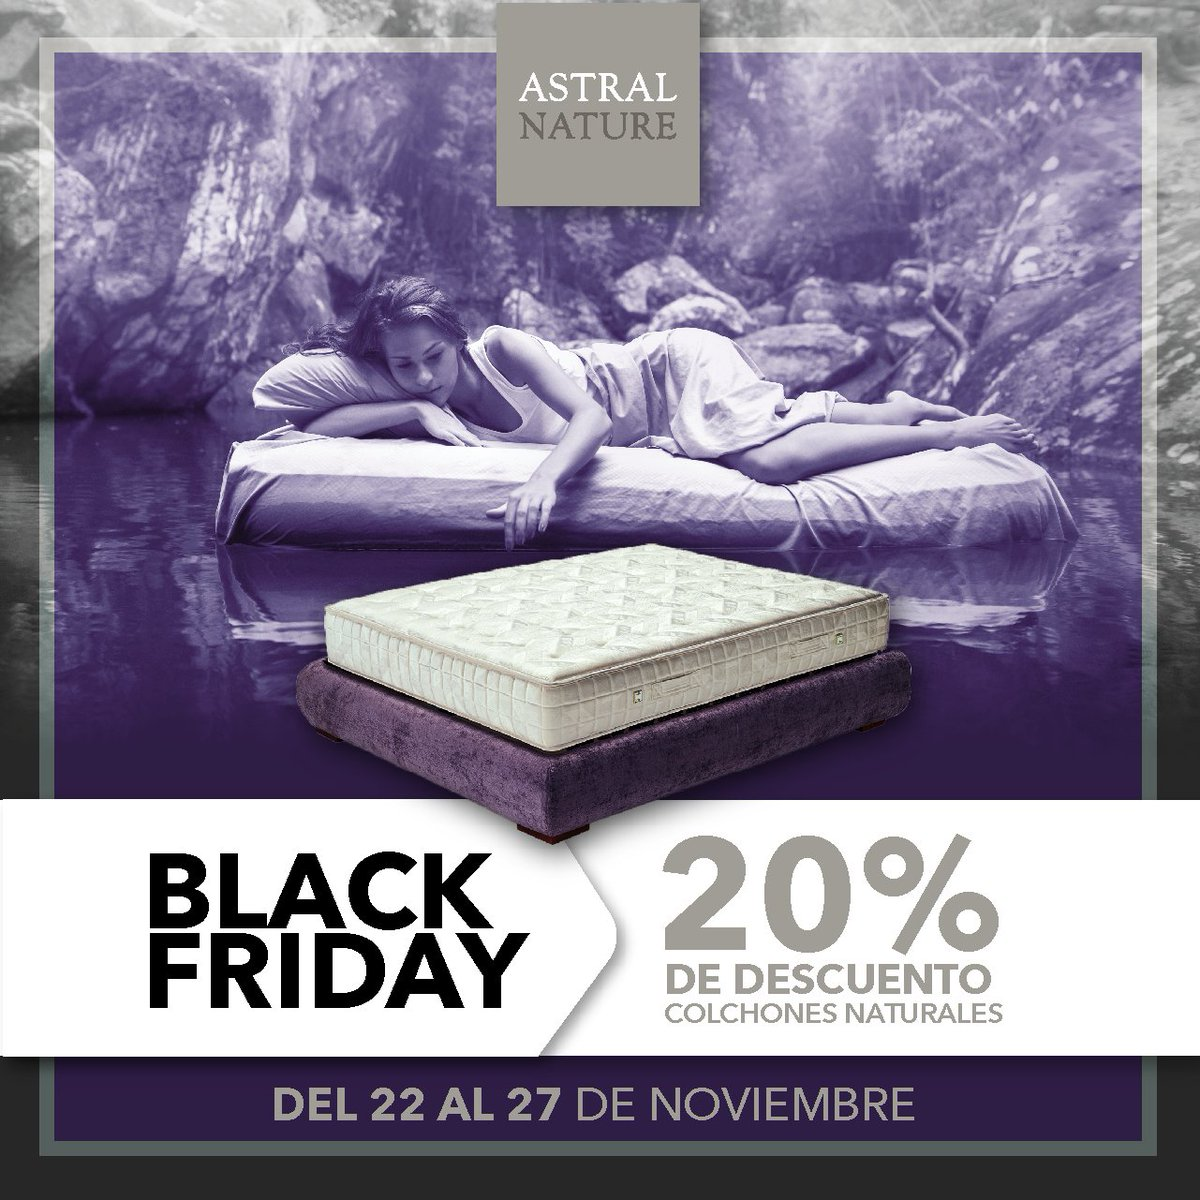 Black Friday Astral Nature Blackfriday